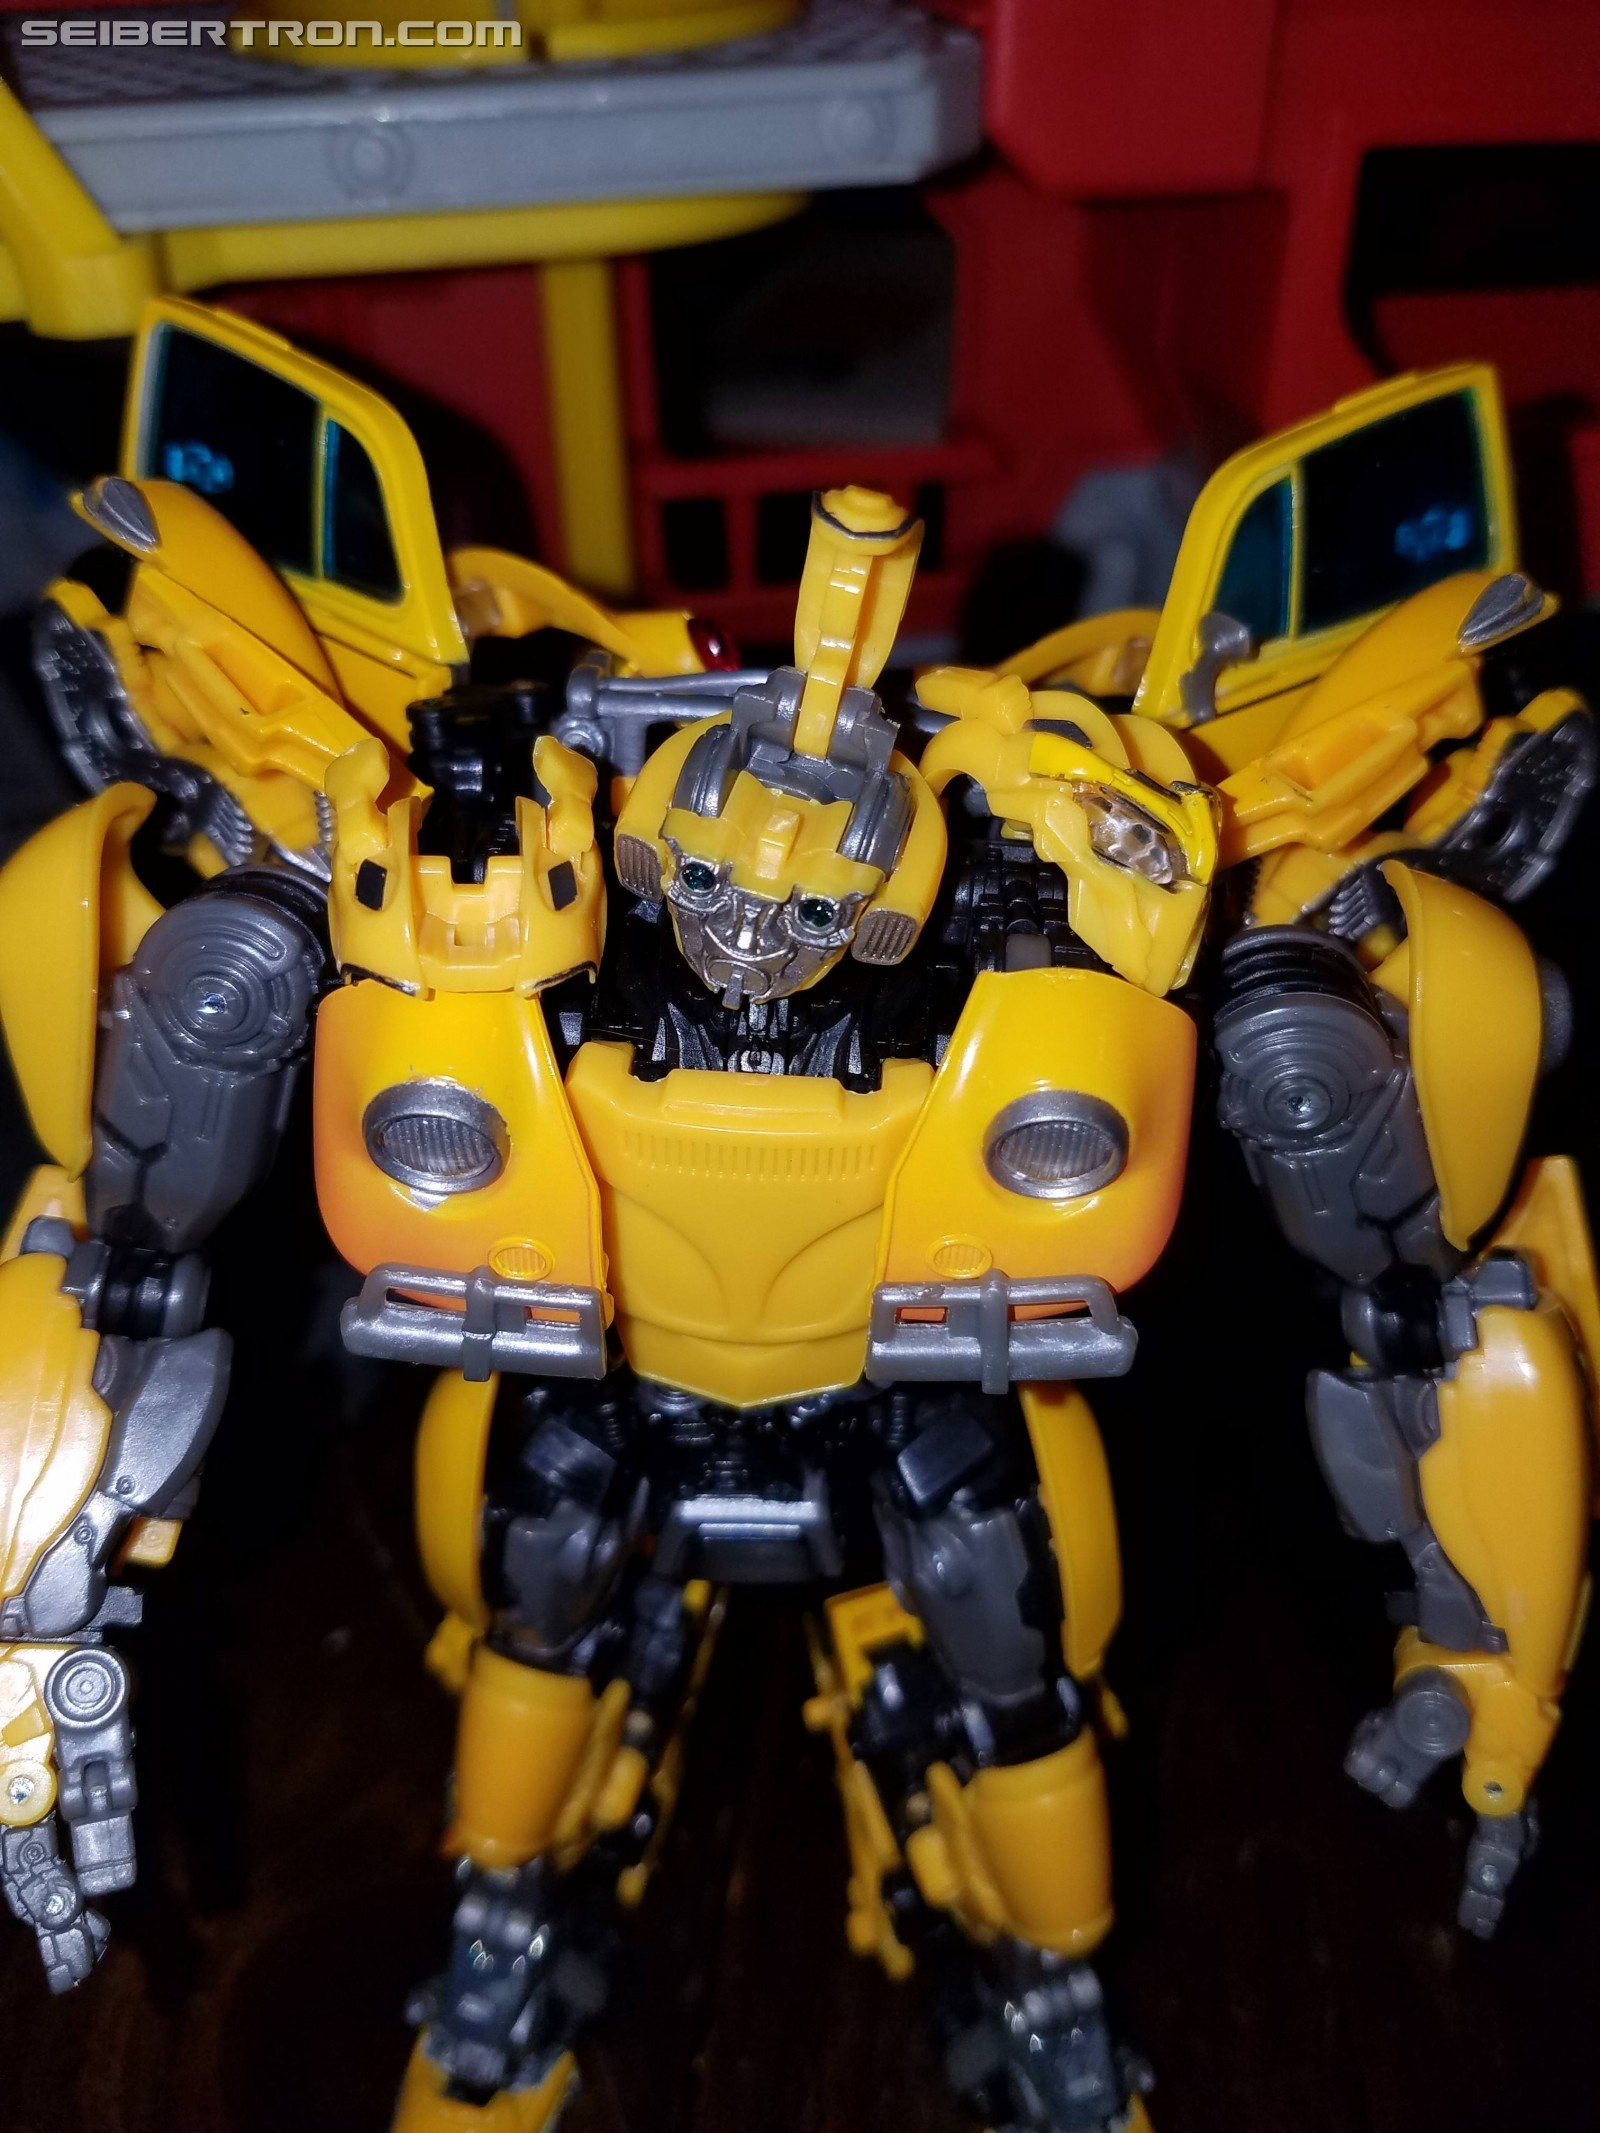 Transformers News: Pictorial Review for Transformers Movie Masterpiece MPM-7 Volkswagen Bumblebee